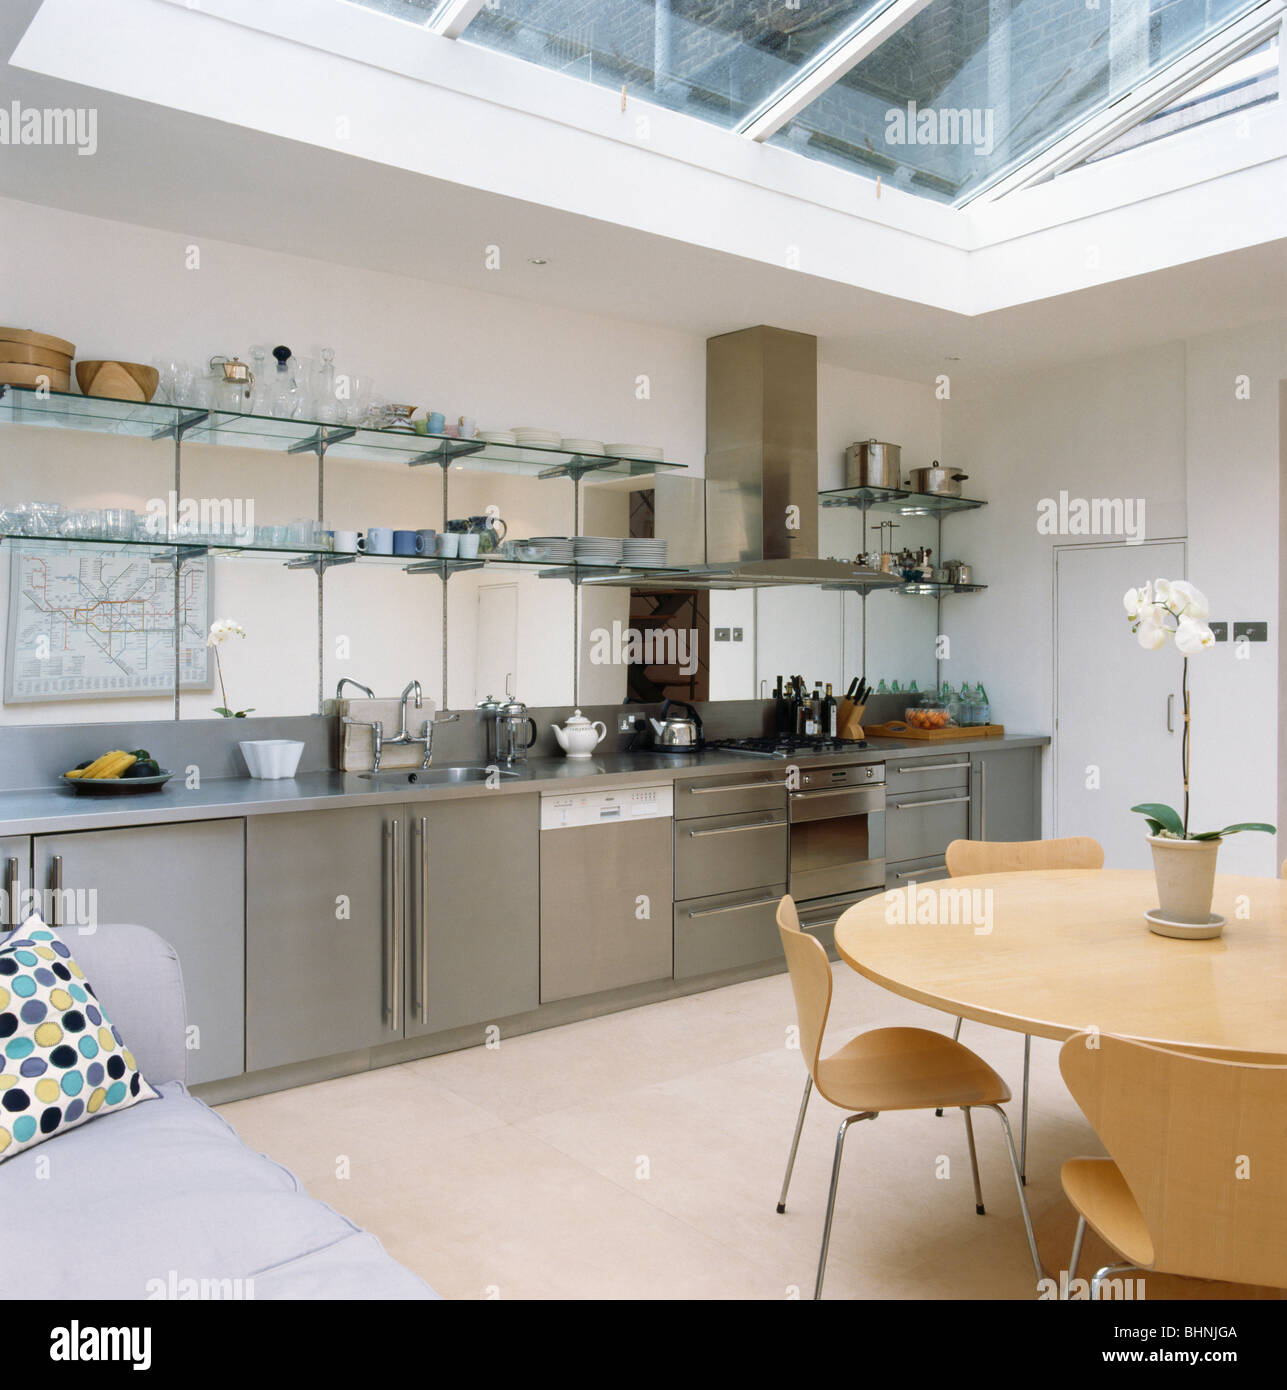 Glass Shelving Above Stainless Steel Fitted Units In Modern Kitchen Dining Room Extension